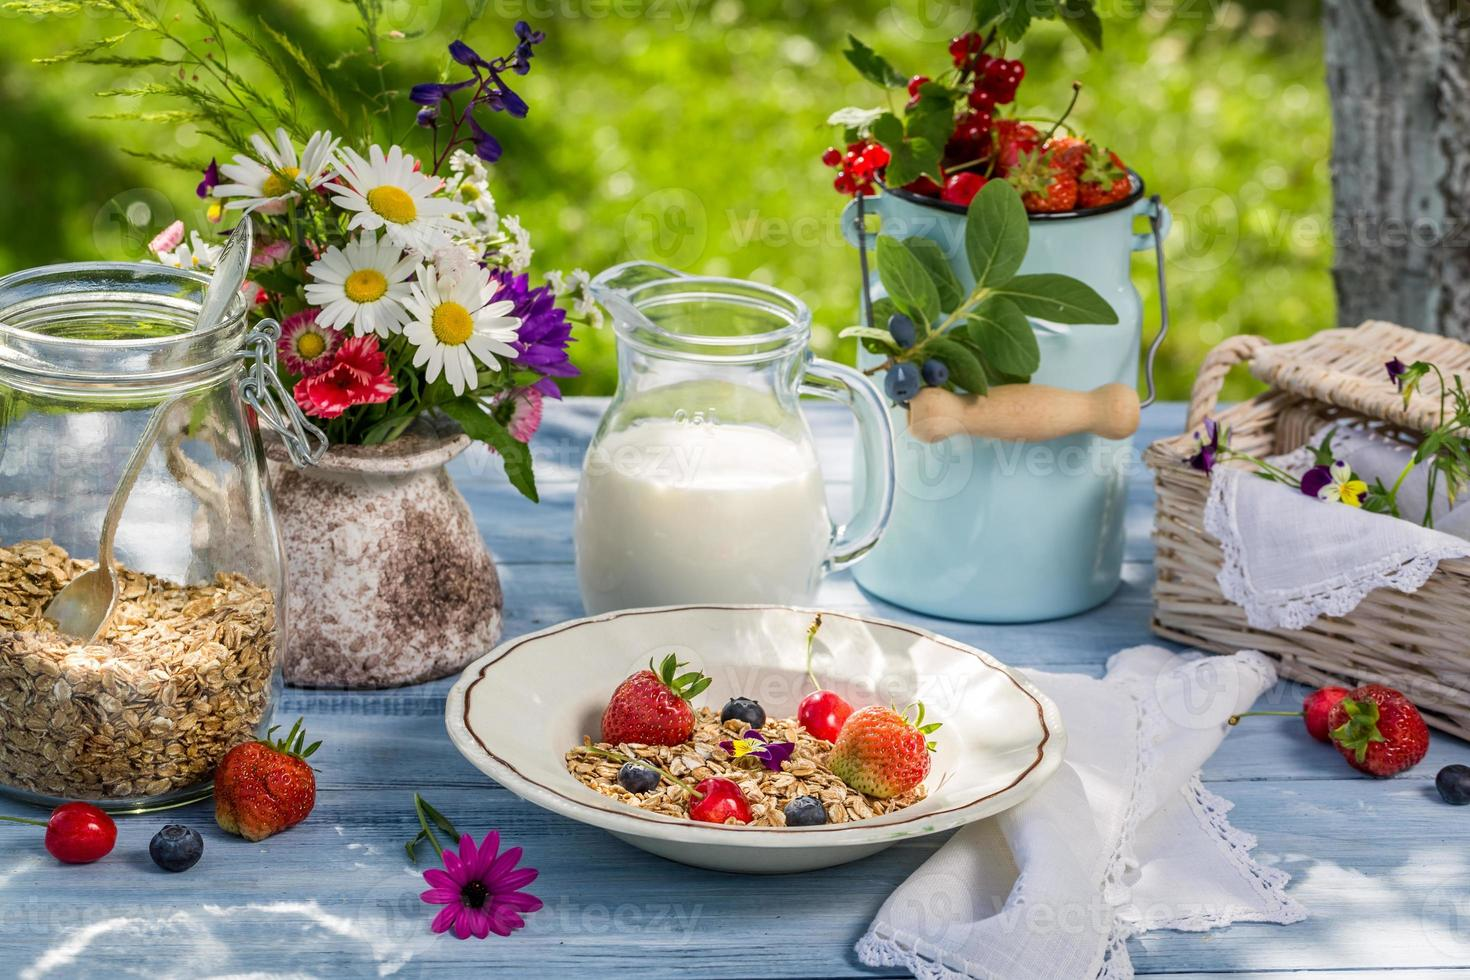 Breakfast with oatmeal, fruit and milk photo